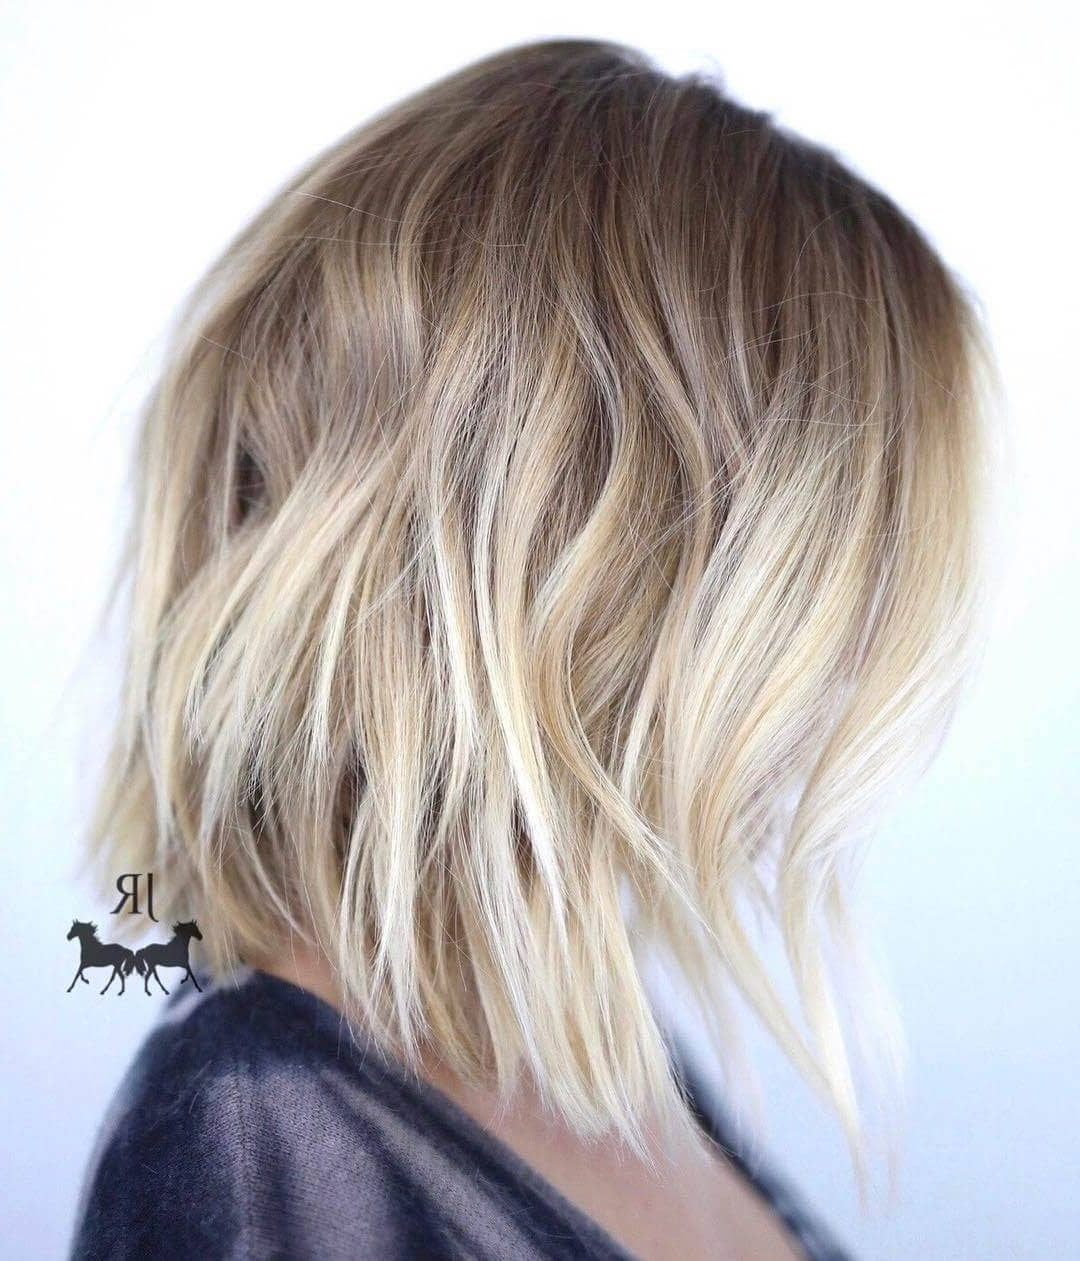 50 Fresh Short Blonde Hair Ideas To Update Your Style In 2018 Throughout Short Bob Hairstyles With Dimensional Coloring (View 12 of 20)